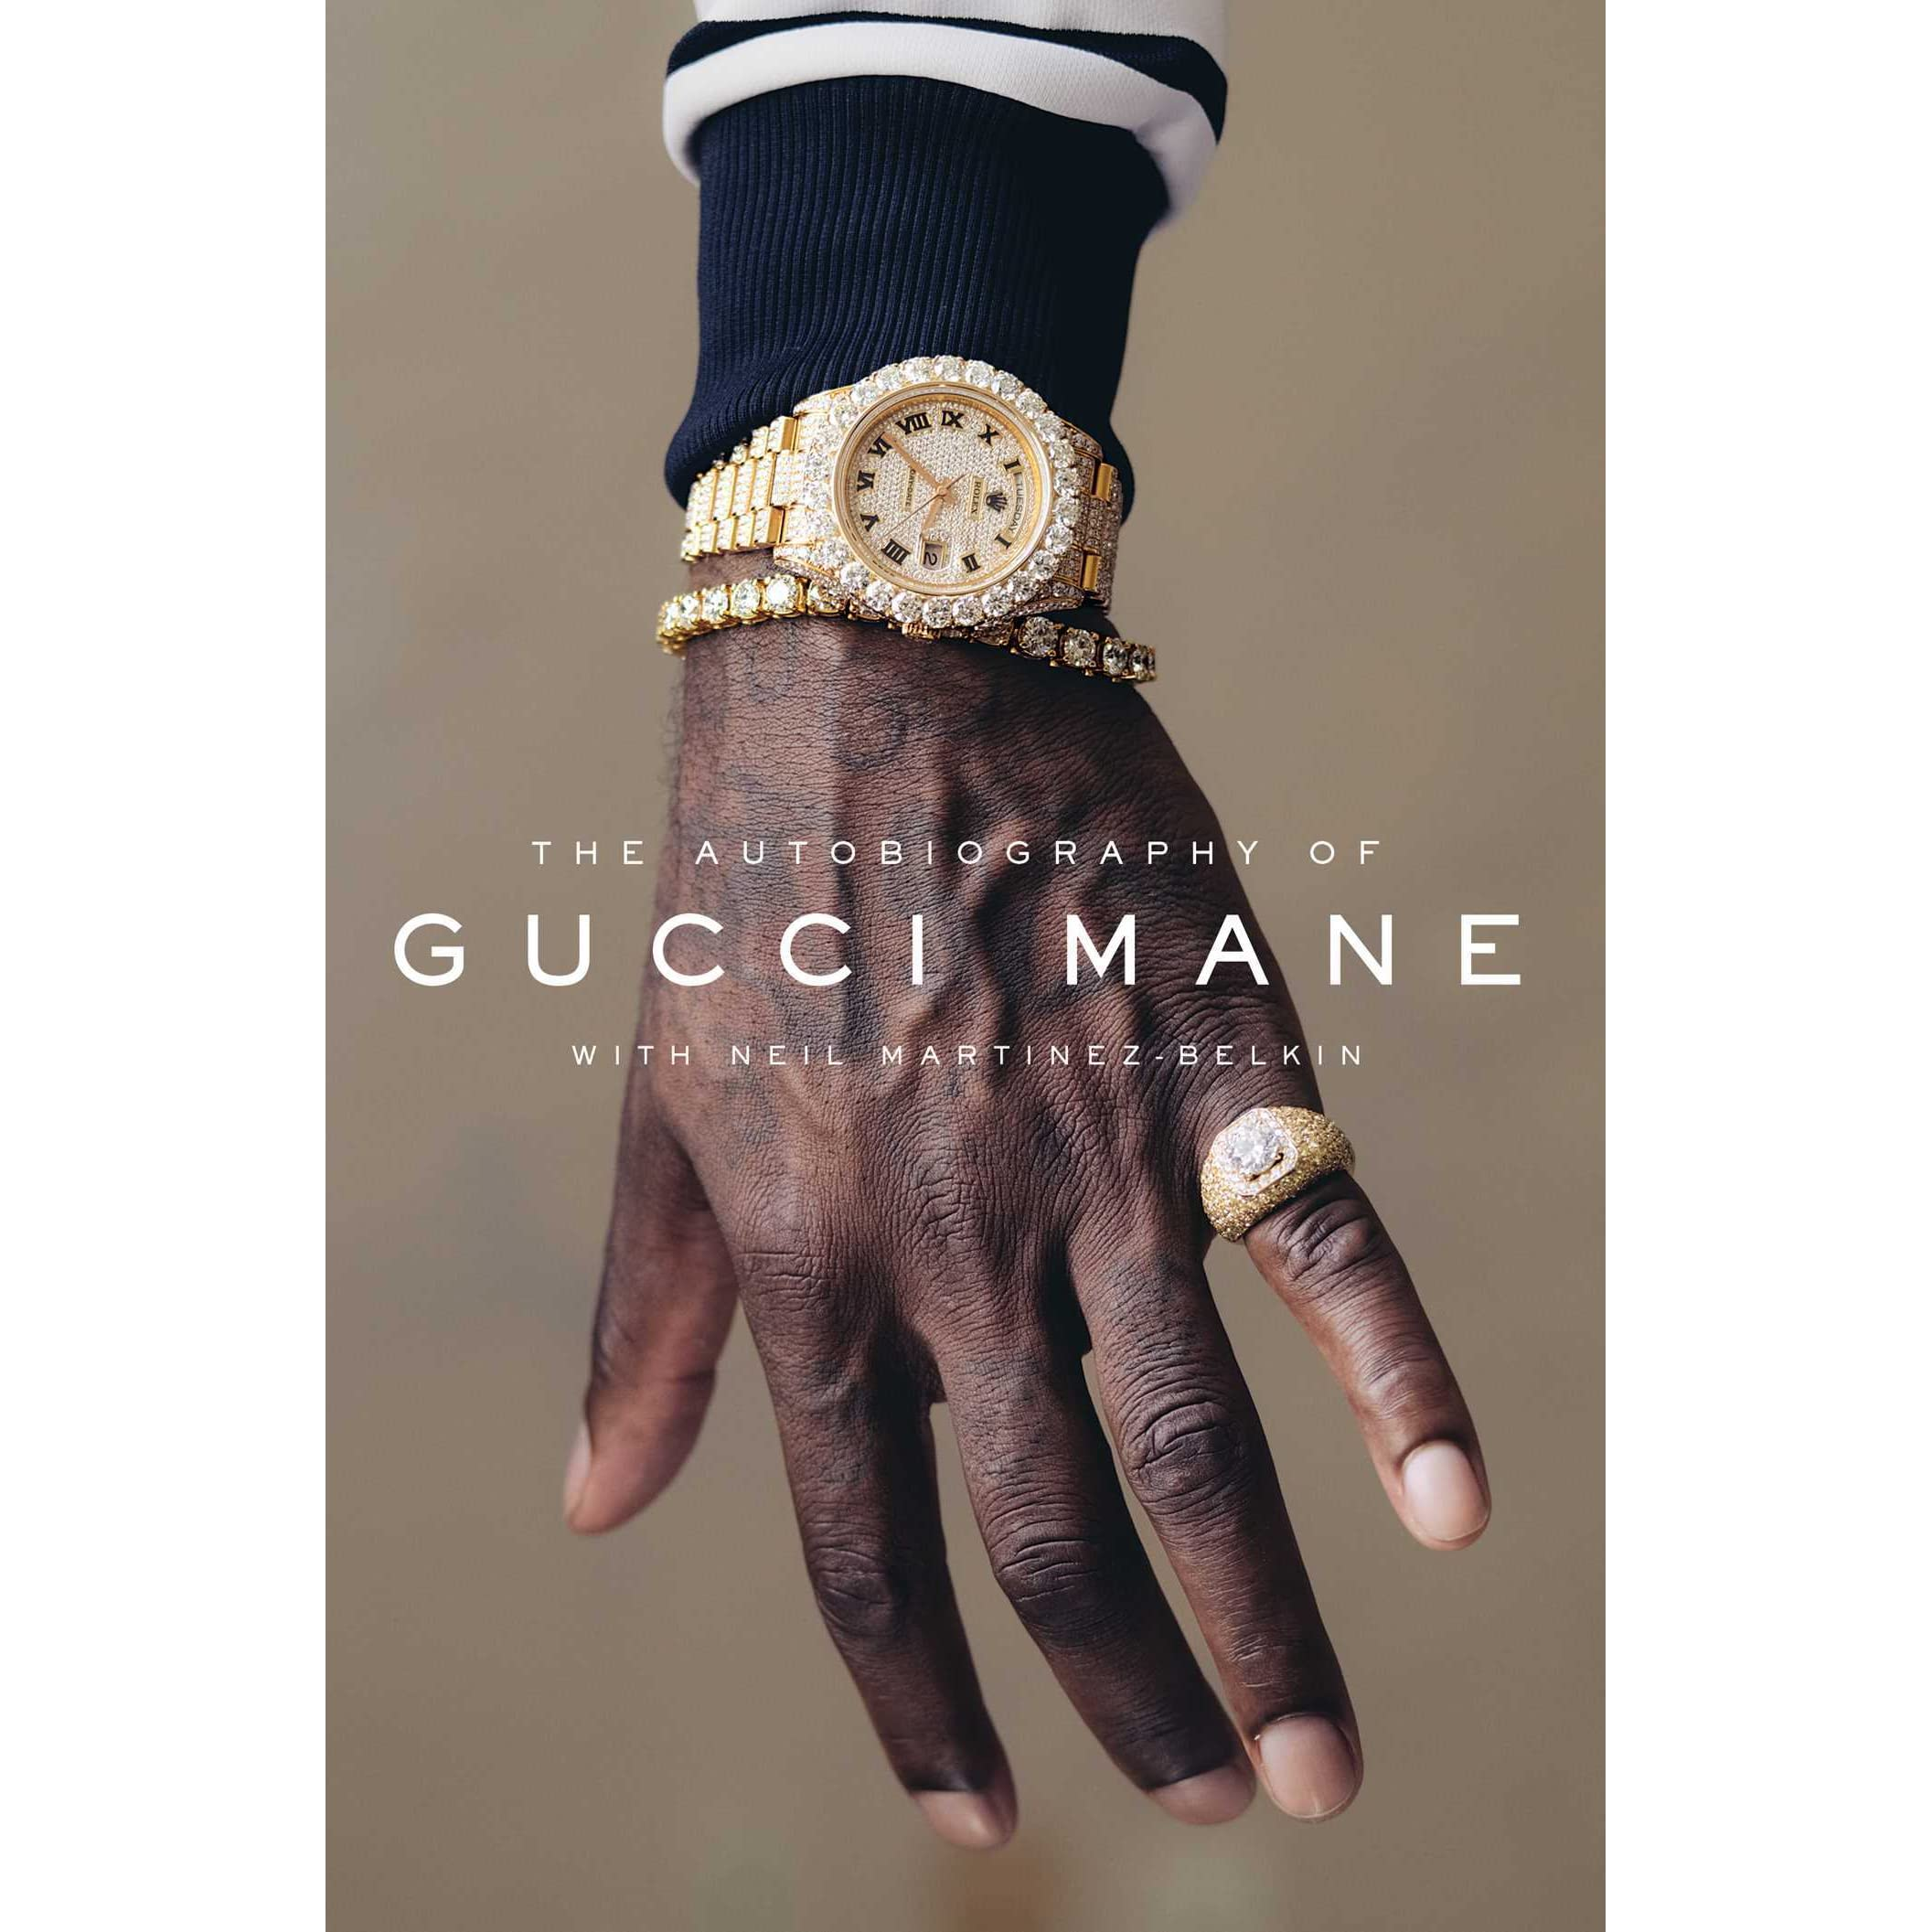 73649dae7 The Autobiography of Gucci Mane by Gucci Mane